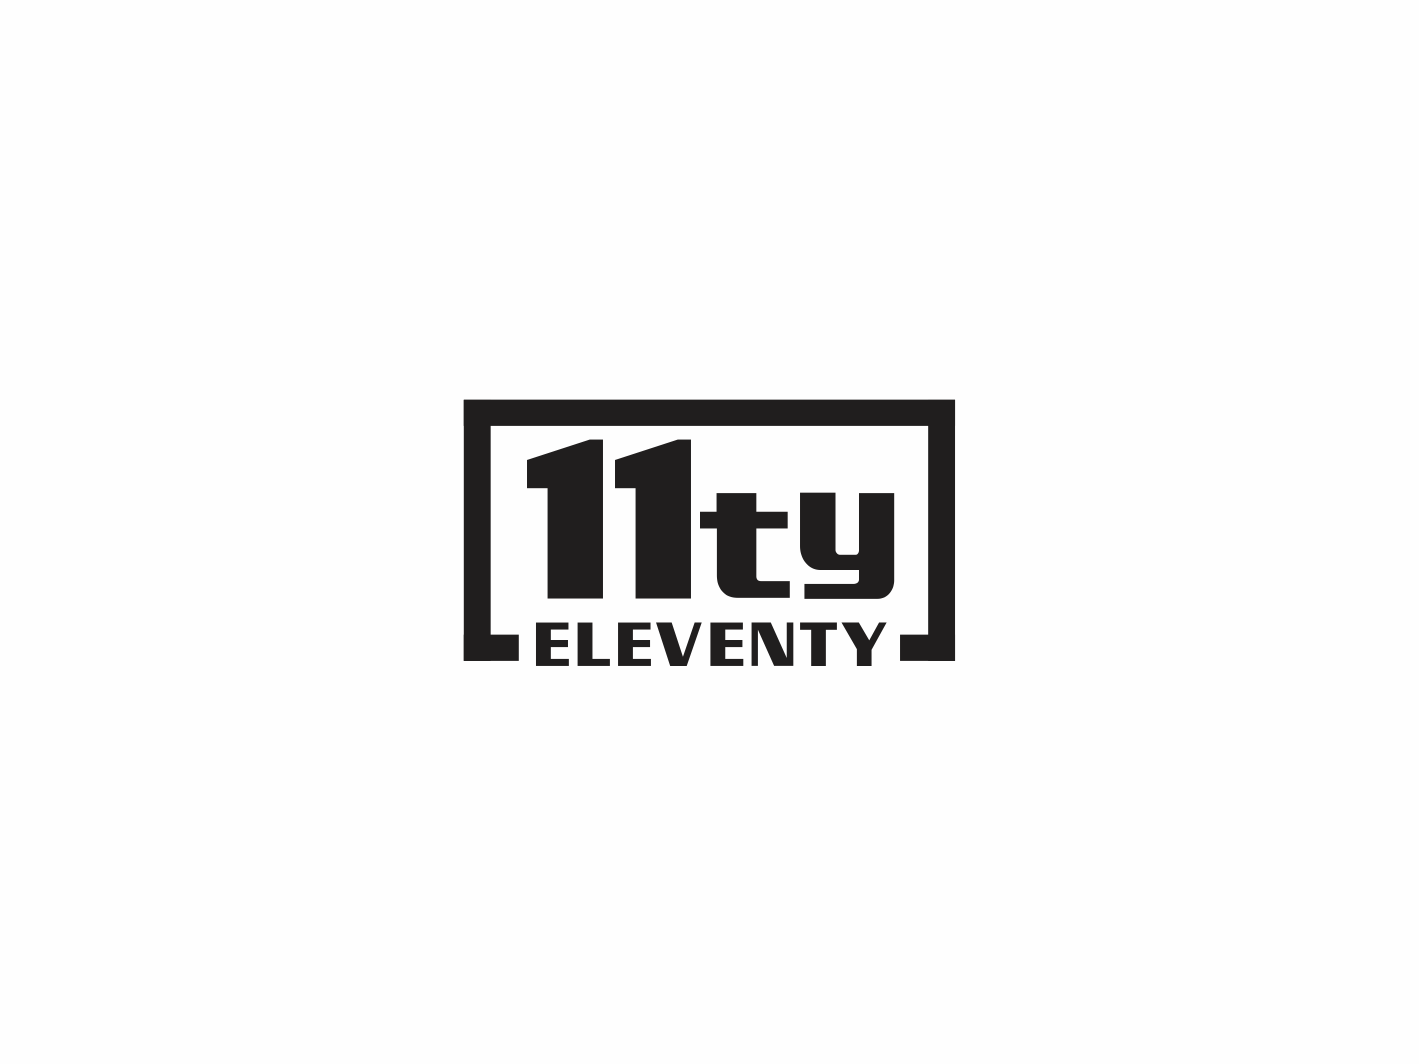 Help Eleventy with a new logo